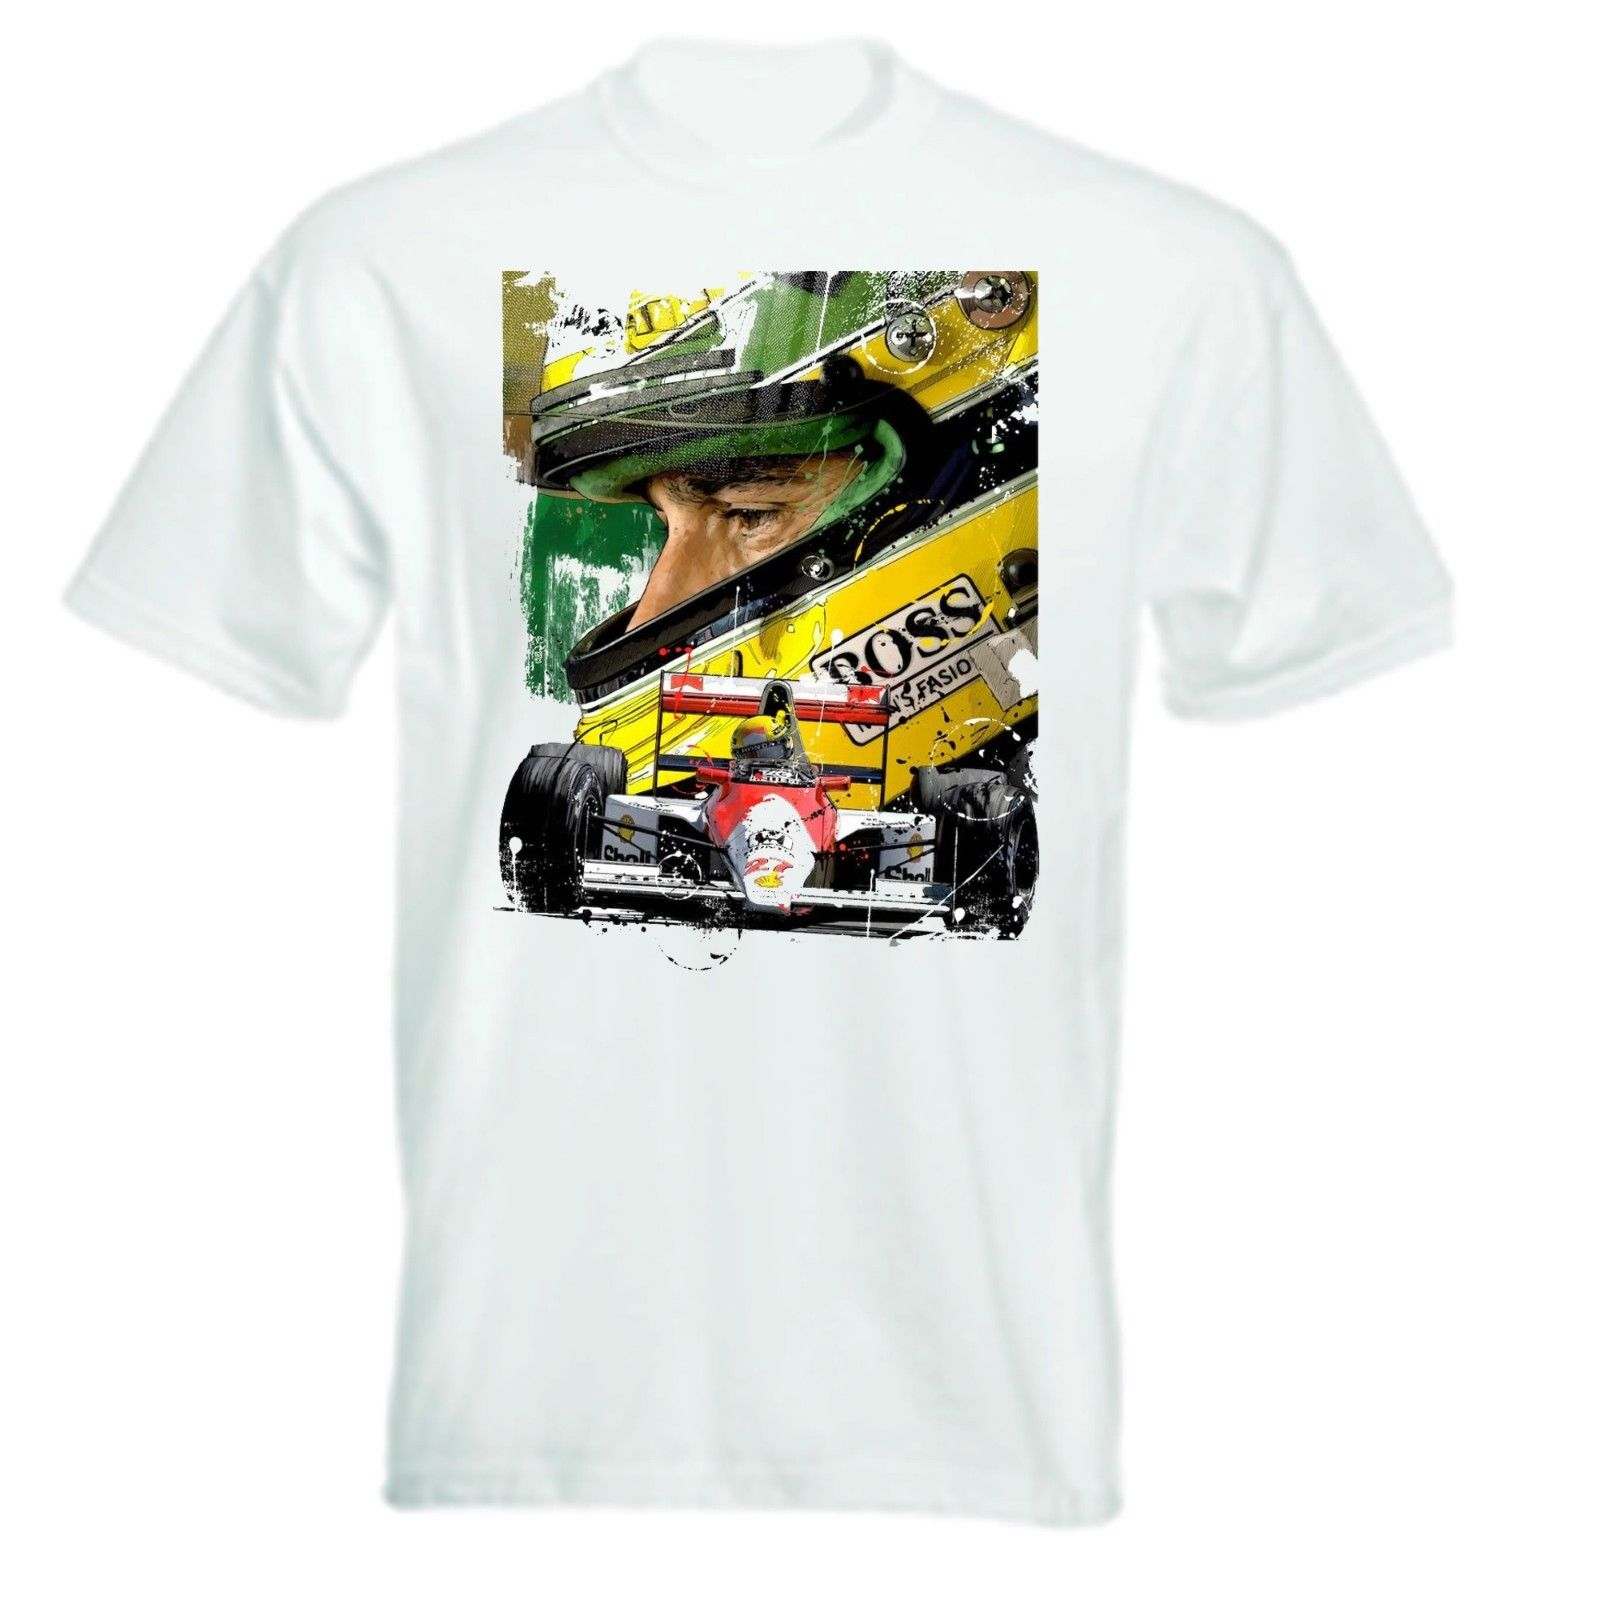 ayrton-font-b-senna-b-font-artwork-t-shirt-2019-high-quality-brand-men-t-shirt-casual-short-sleeve-o-neck-fashion-printed-100-cotton